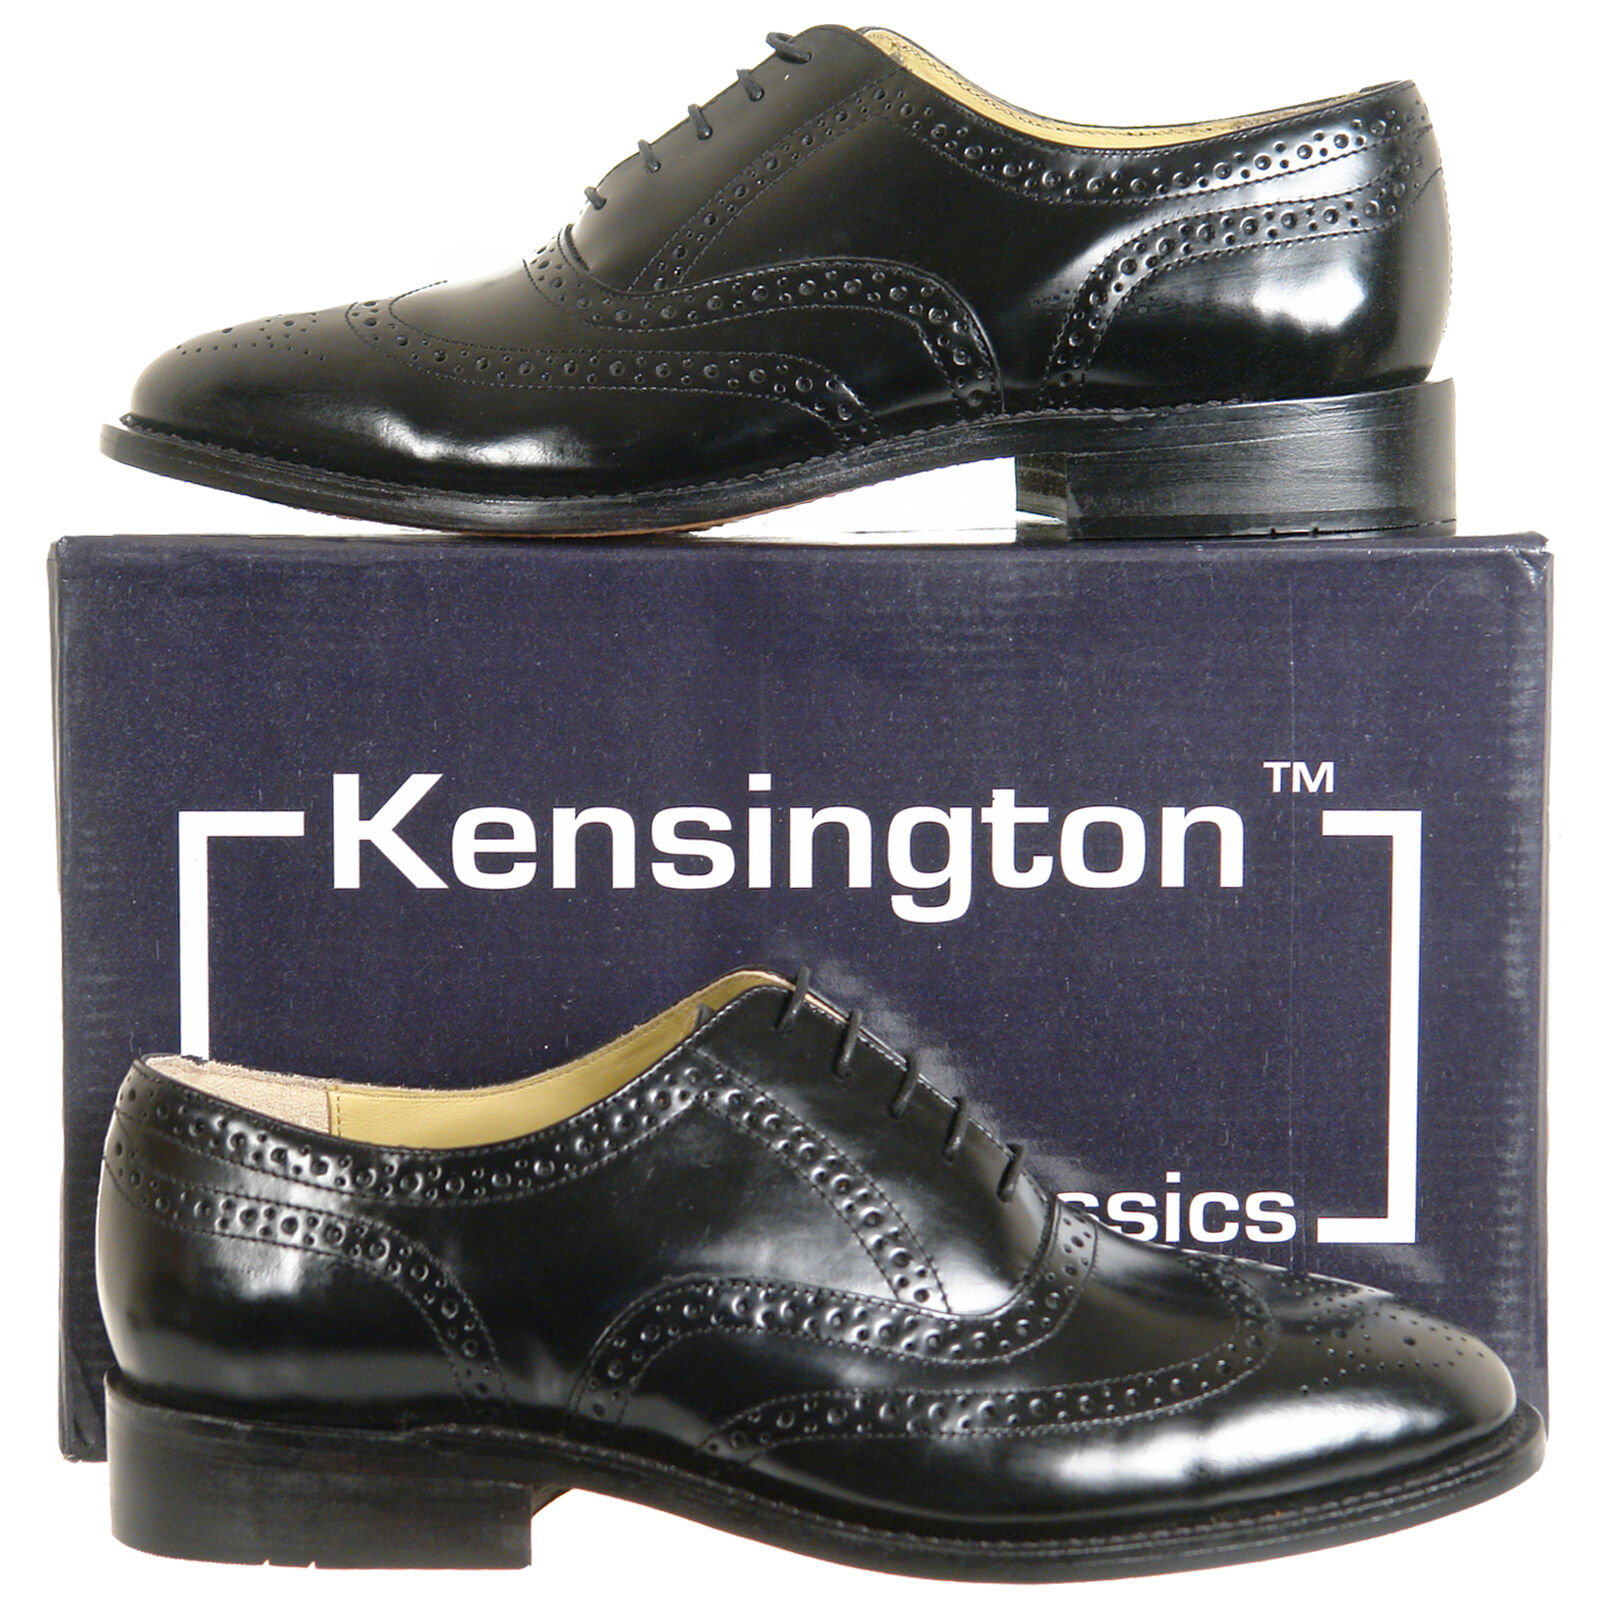 Mens Full Leather Brogues shoes Black FREE UK SHIPPING